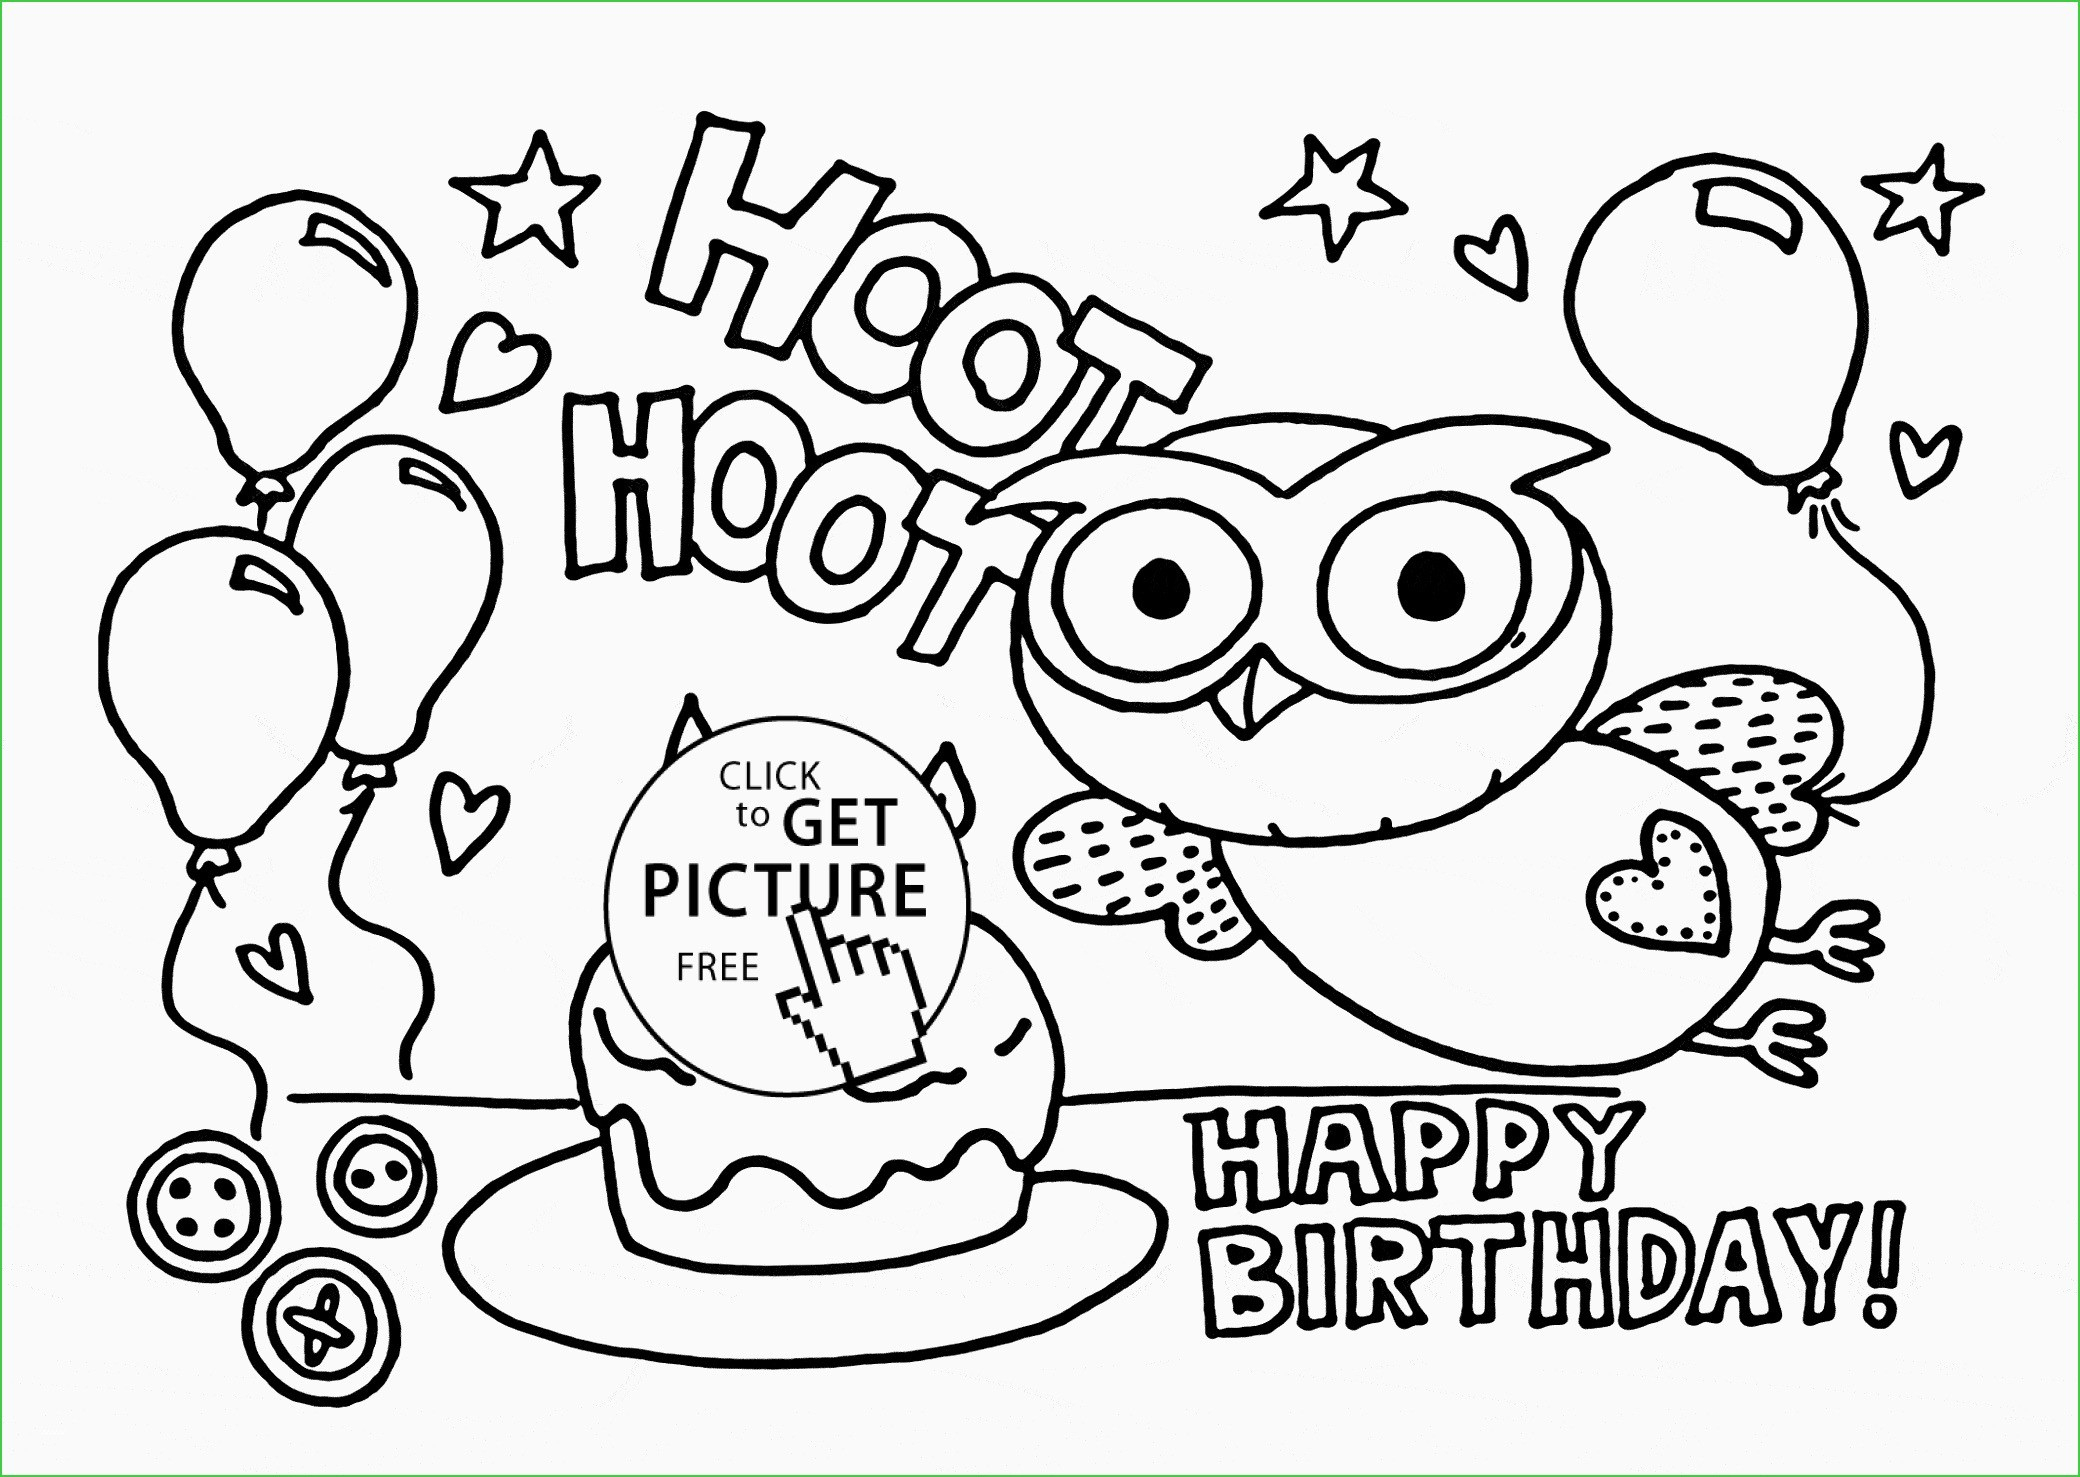 Free Printable 50Th Birthday Cards Funny | Popisgrzegorz - Free Printable 50Th Birthday Cards Funny